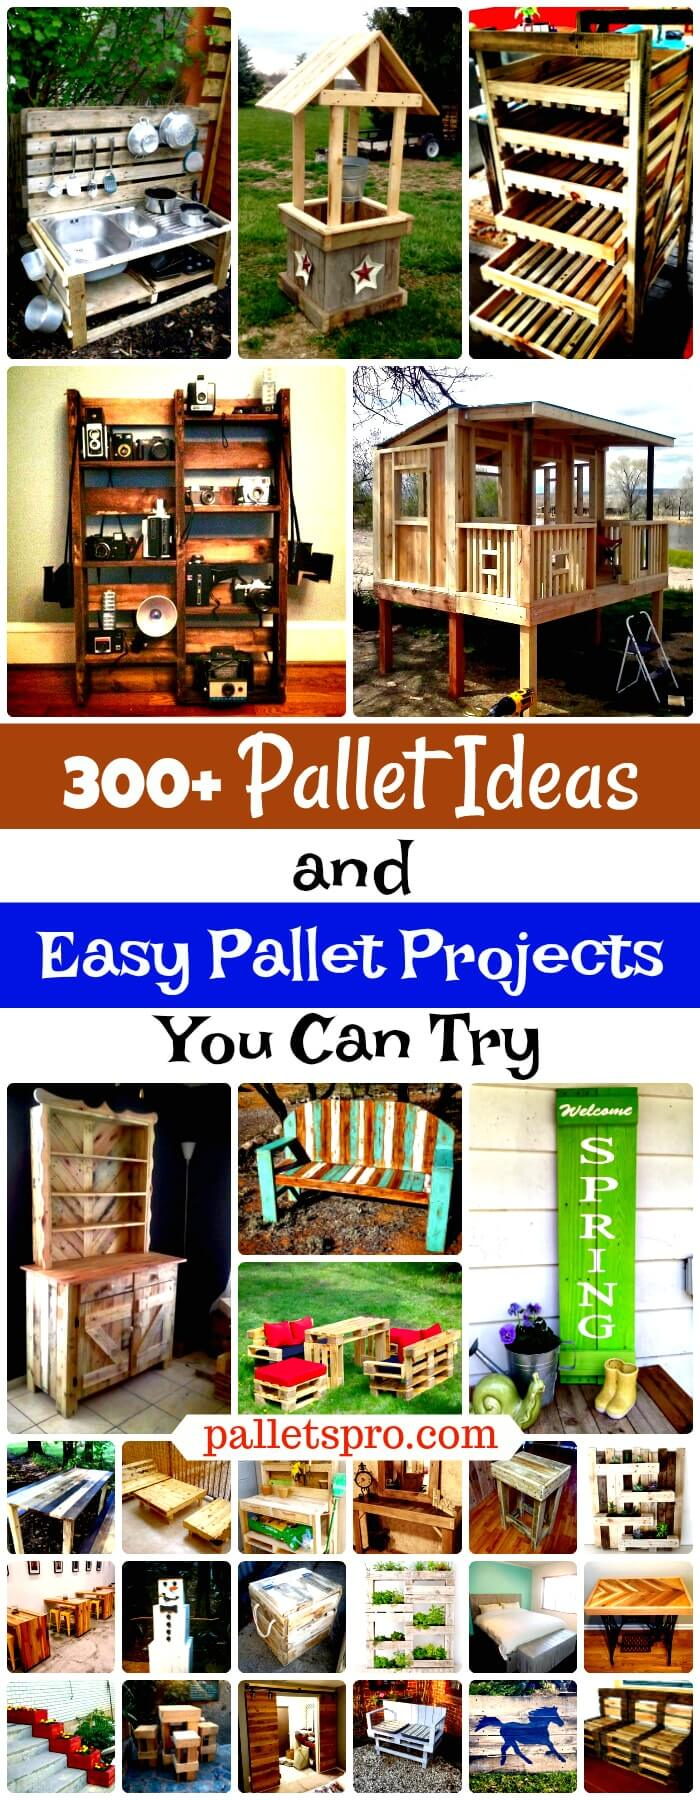 Garden Centre: 300+ Pallet Ideas And Easy Pallet Projects You Can Try